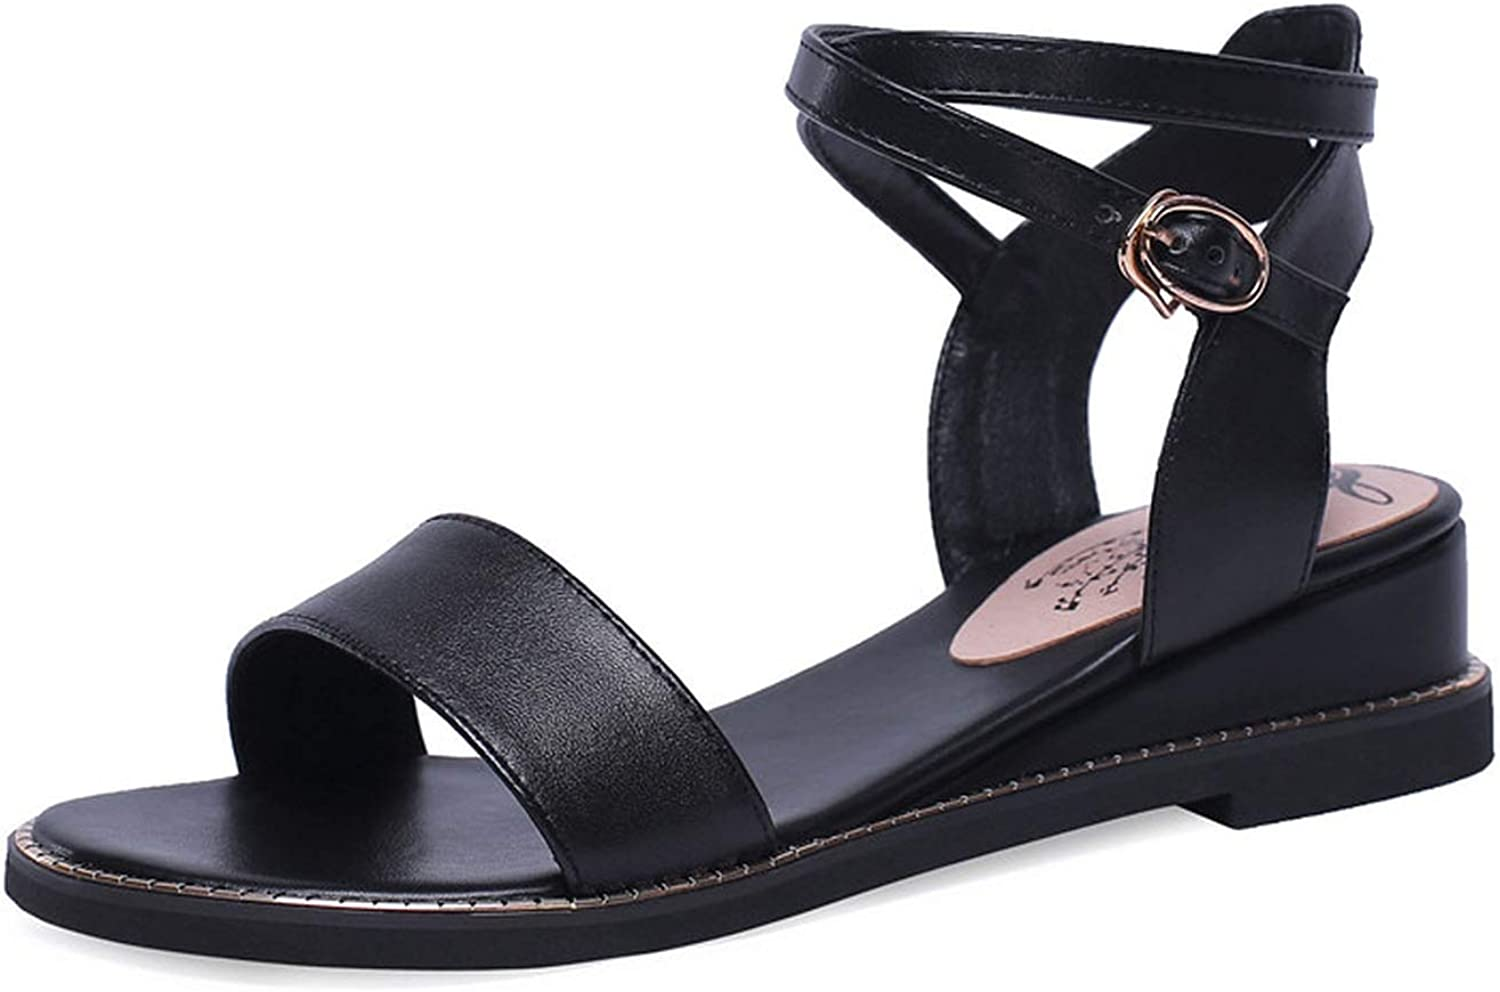 Big Size 43 Sandals Women Cow Leather shoes Simple Solid Summer shoes Woman Casual shoes Black,Black,9